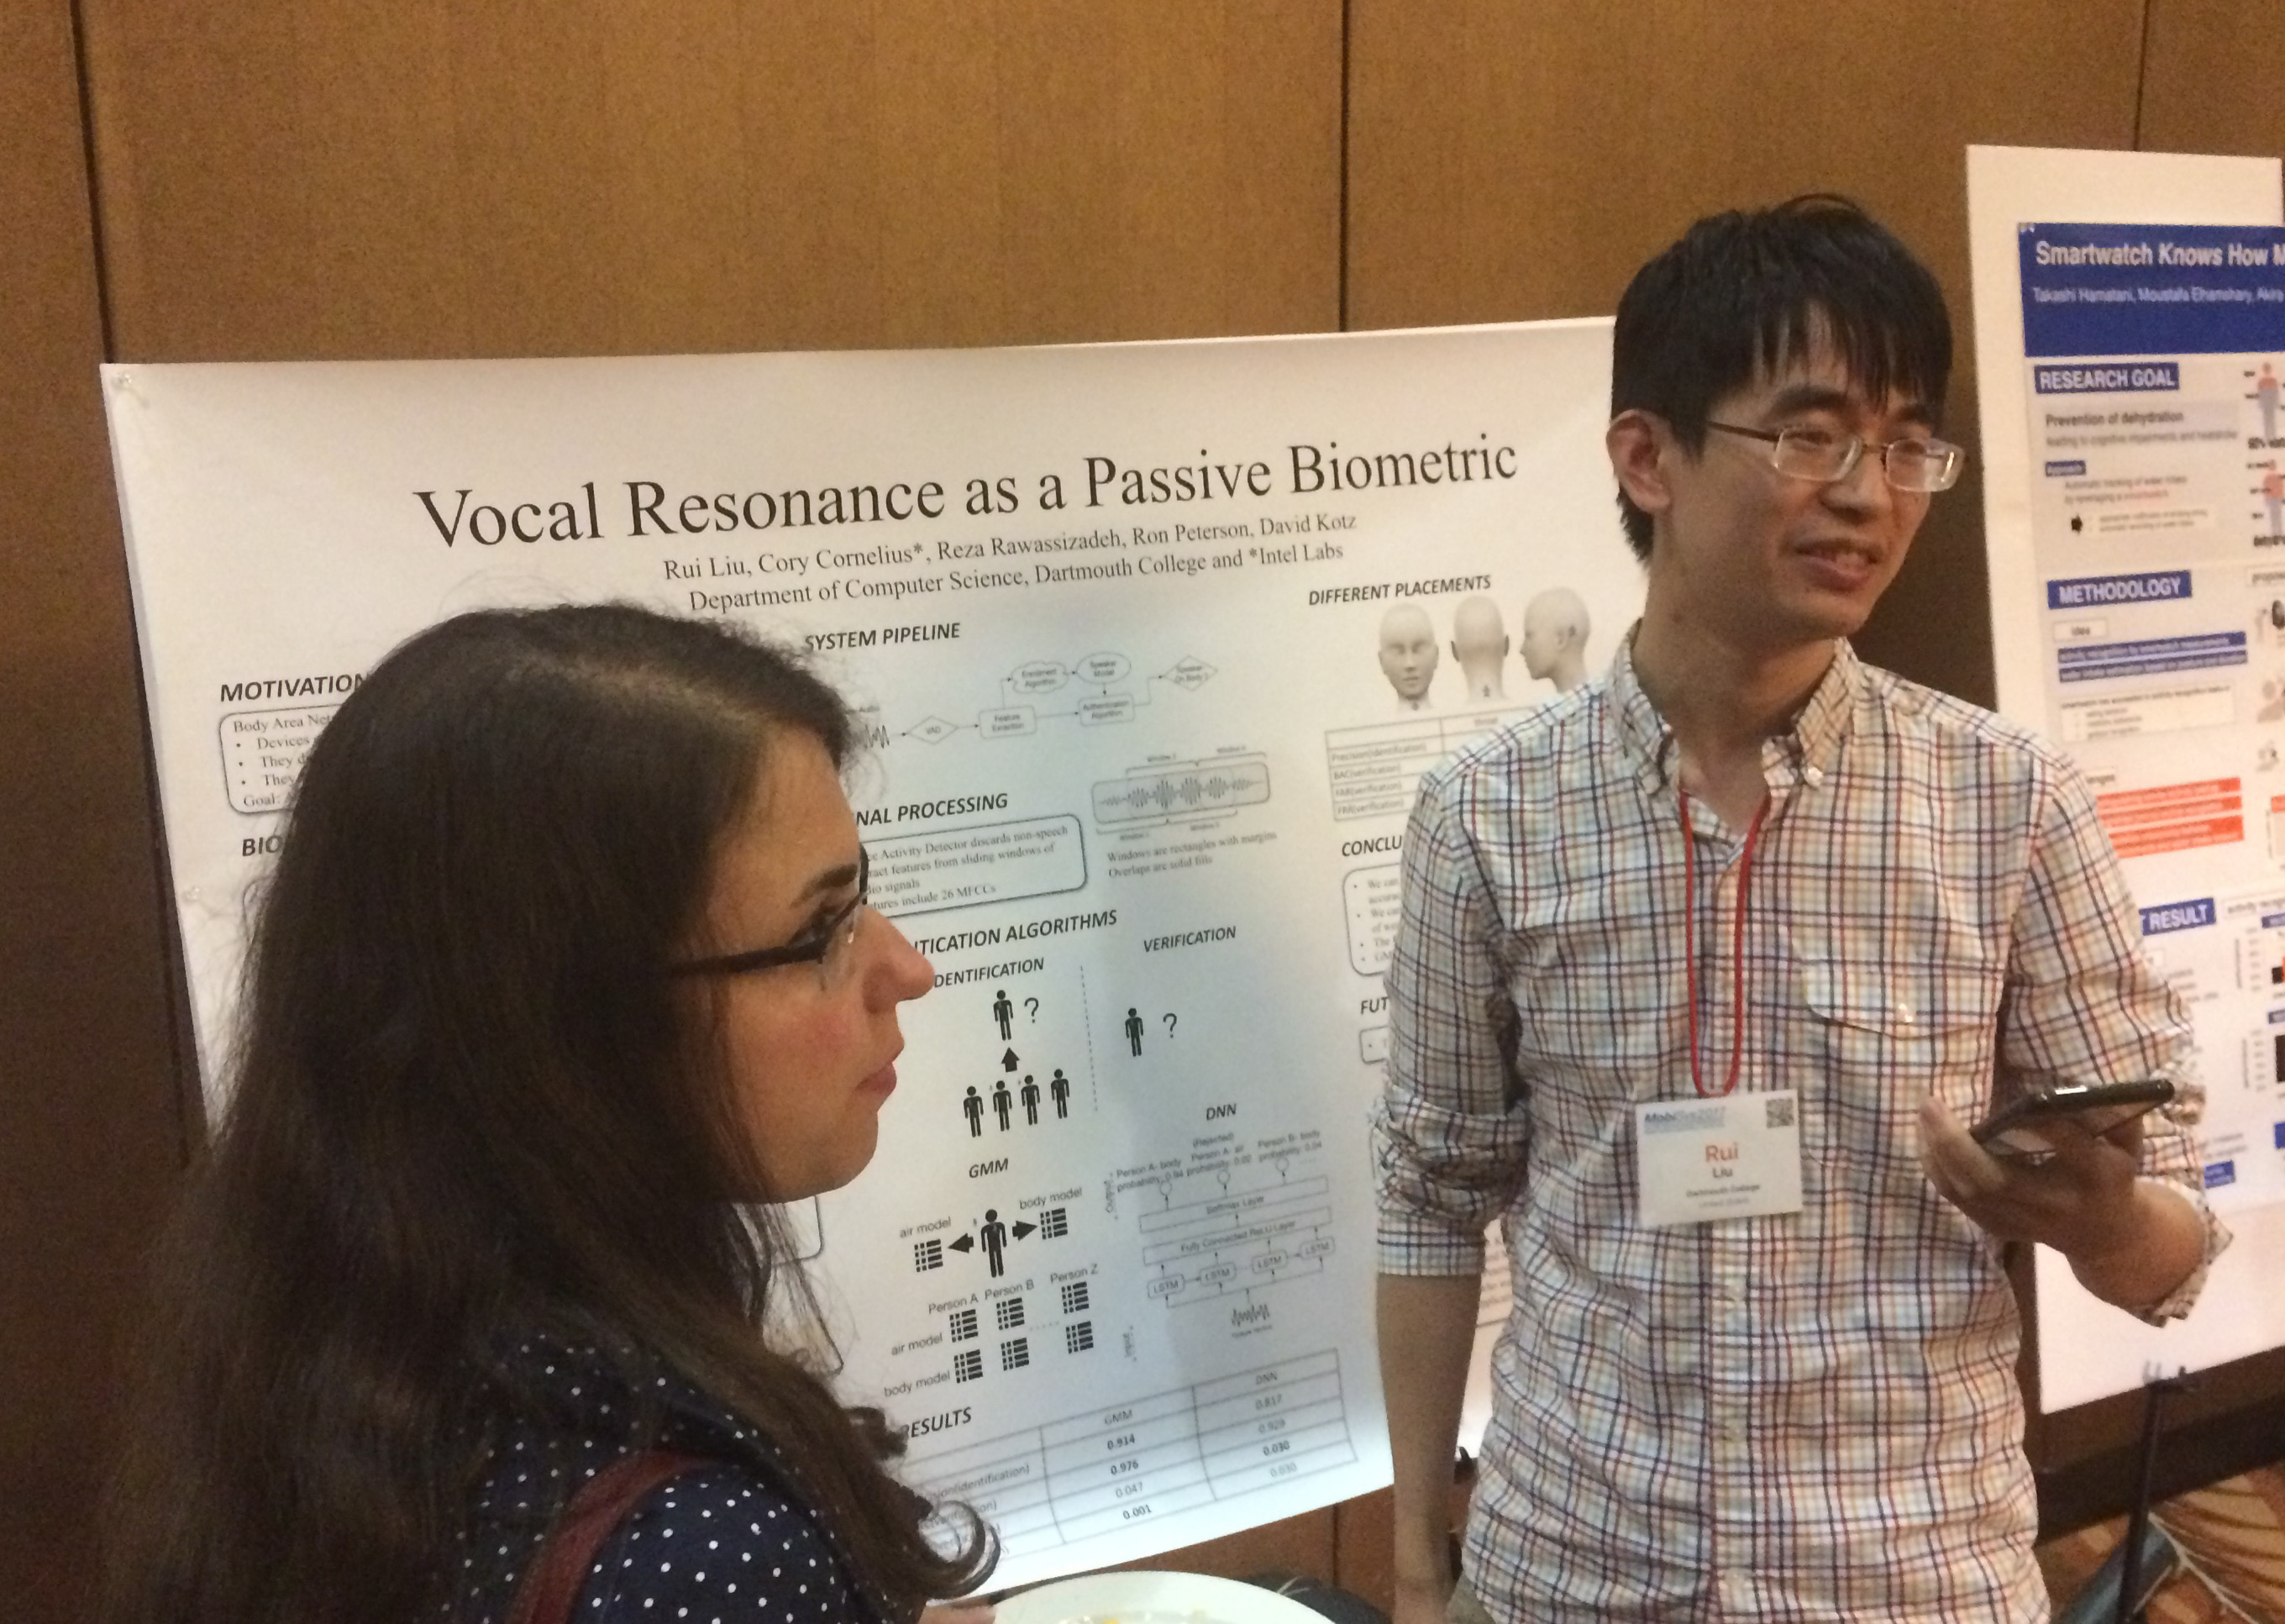 Rui Liu explains his poster to attendees at ACM MobiSys'17.